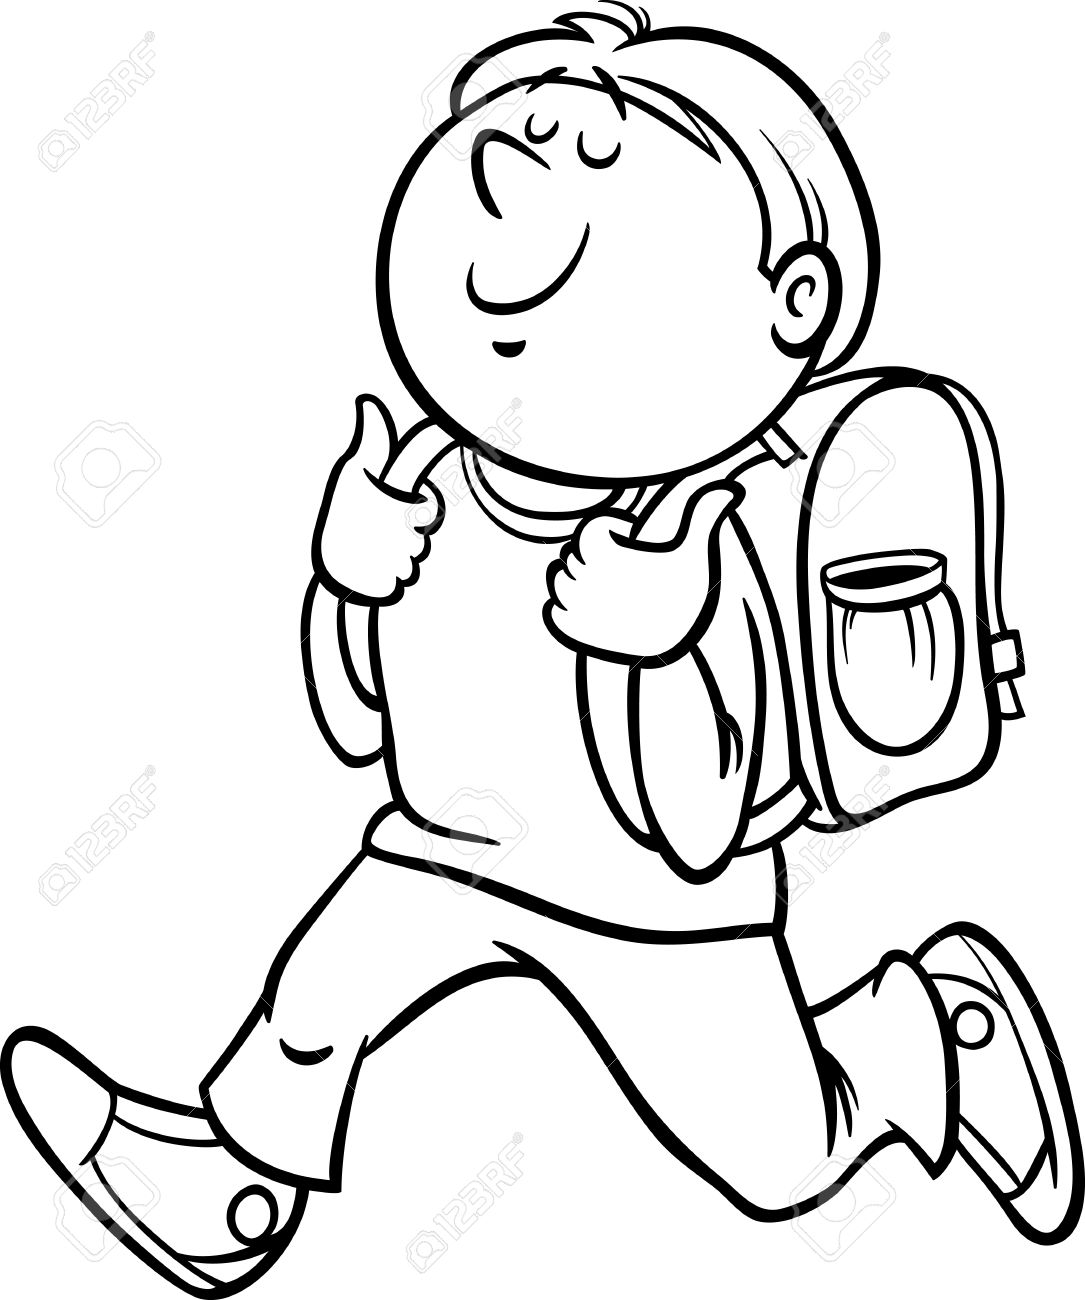 Boy Student Clipart Black And White